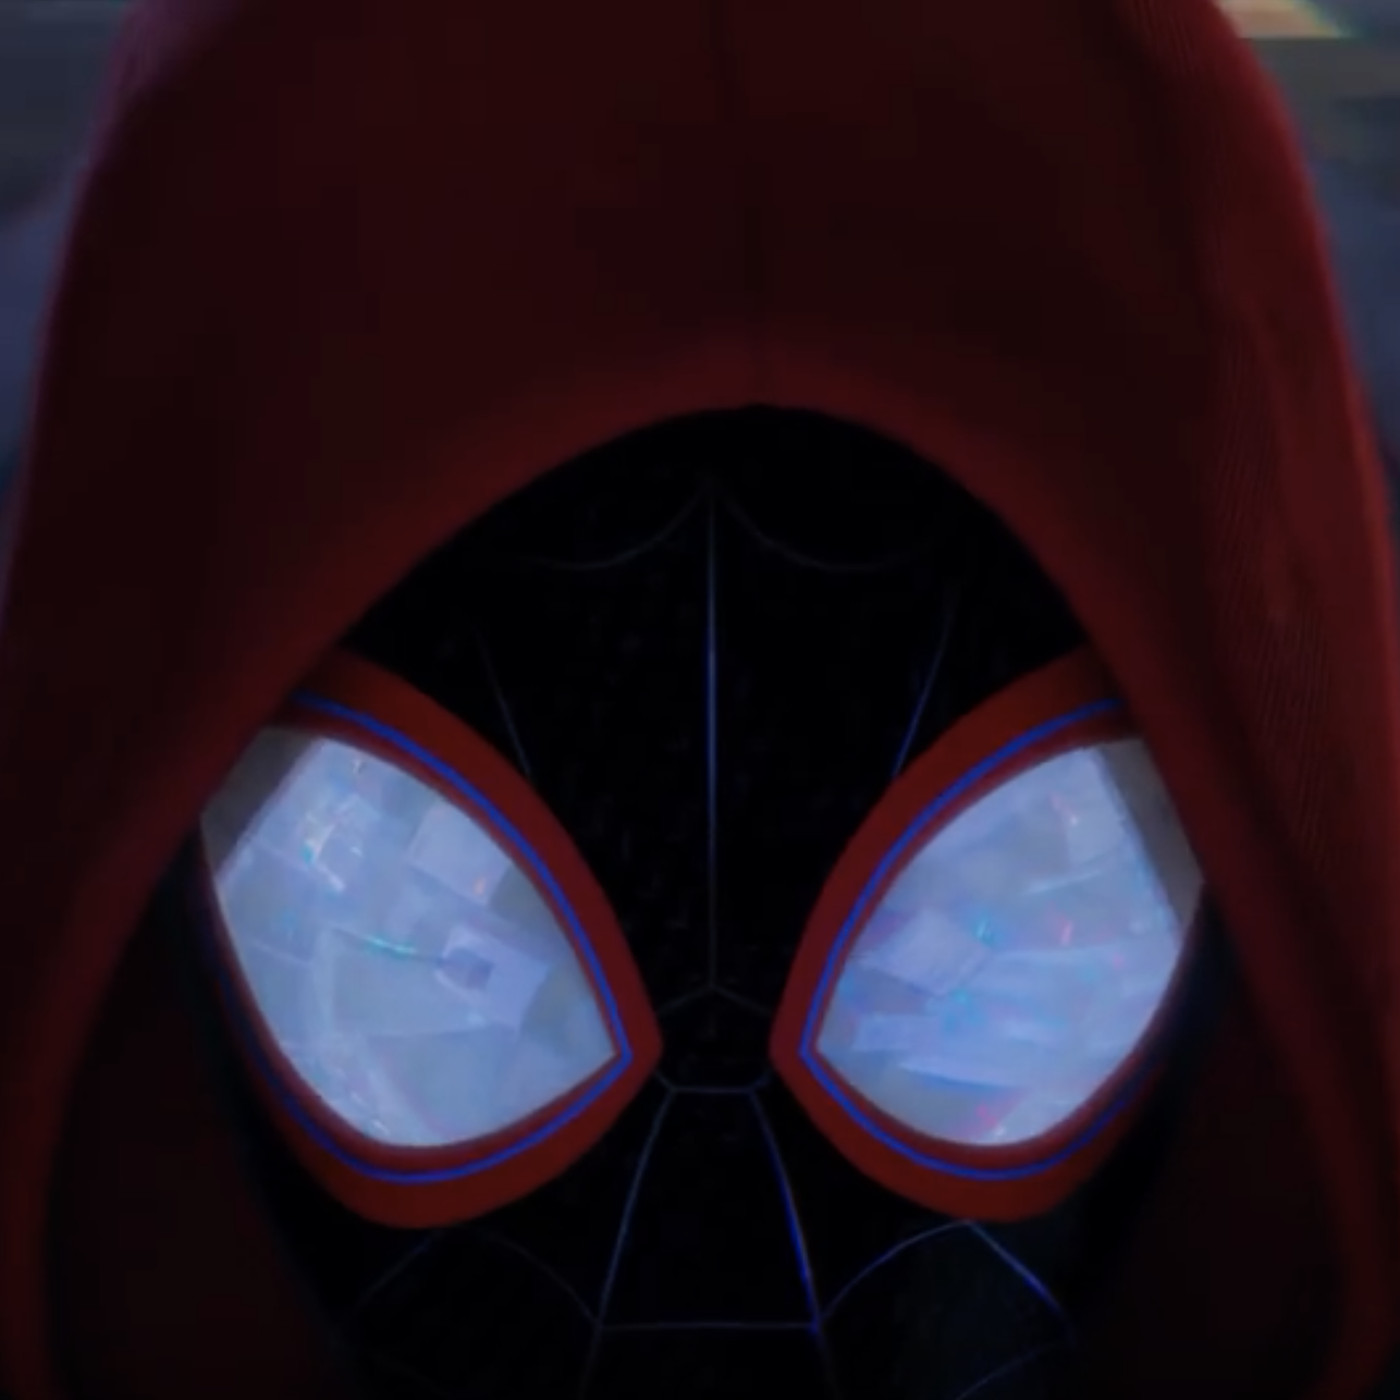 Spider-Man: Into the Spider-Verse's new trailer looks incredible - The Verge